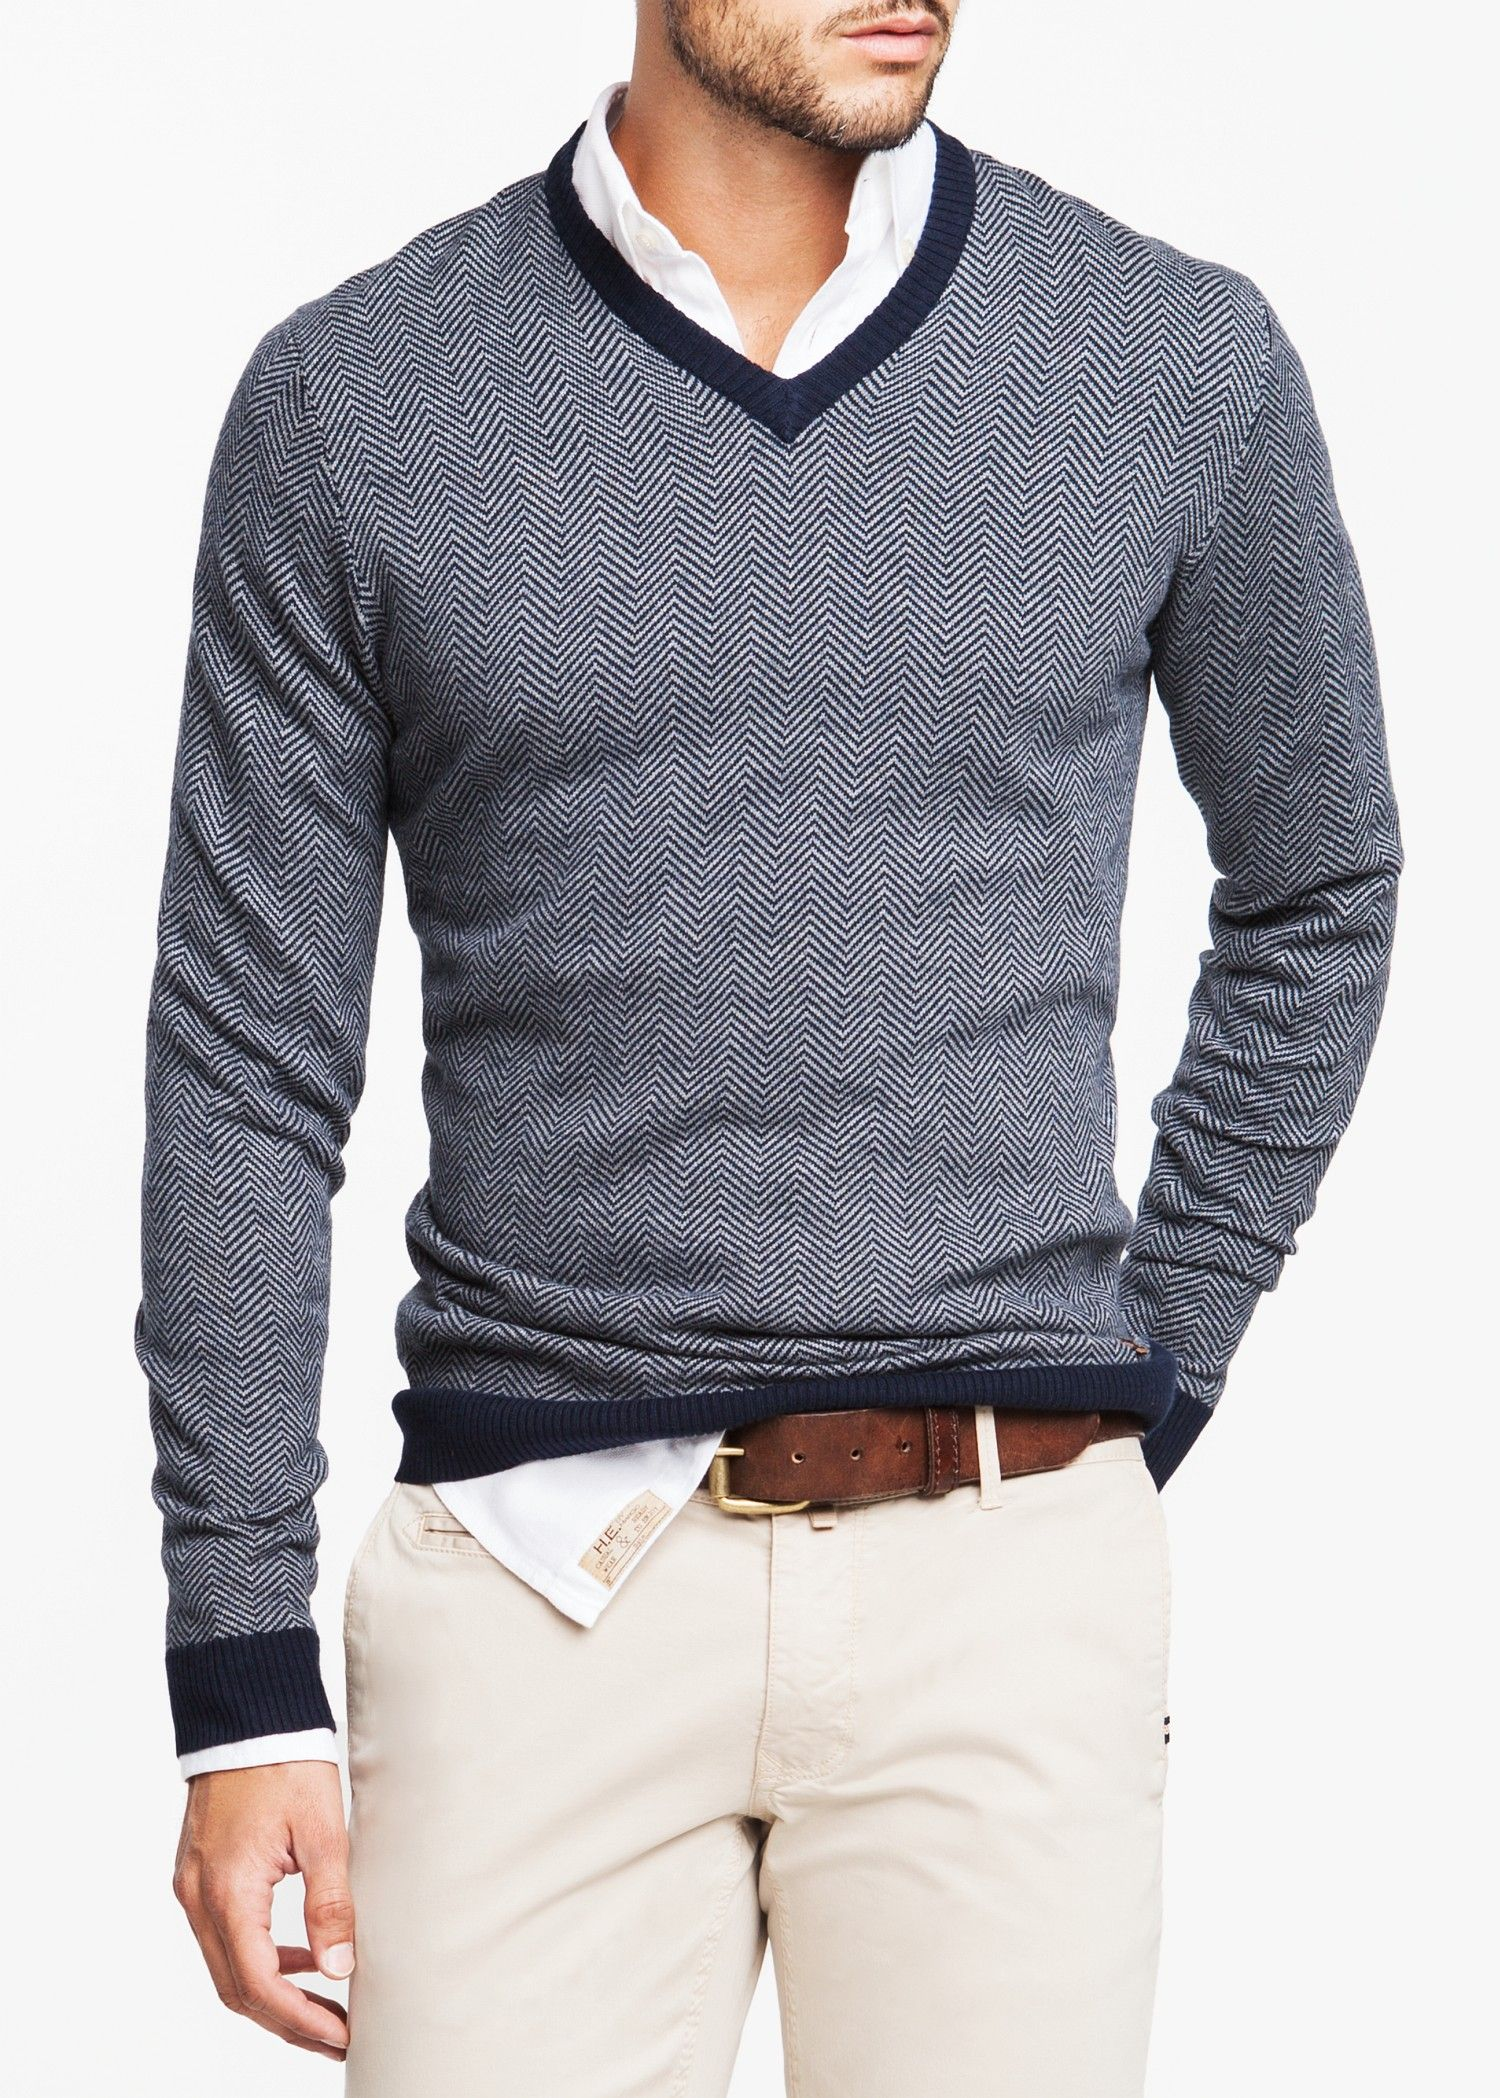 Herringbone cotton-blend sweater - Men   Him   Mens fashion, Fashion ... 6597b874ee9